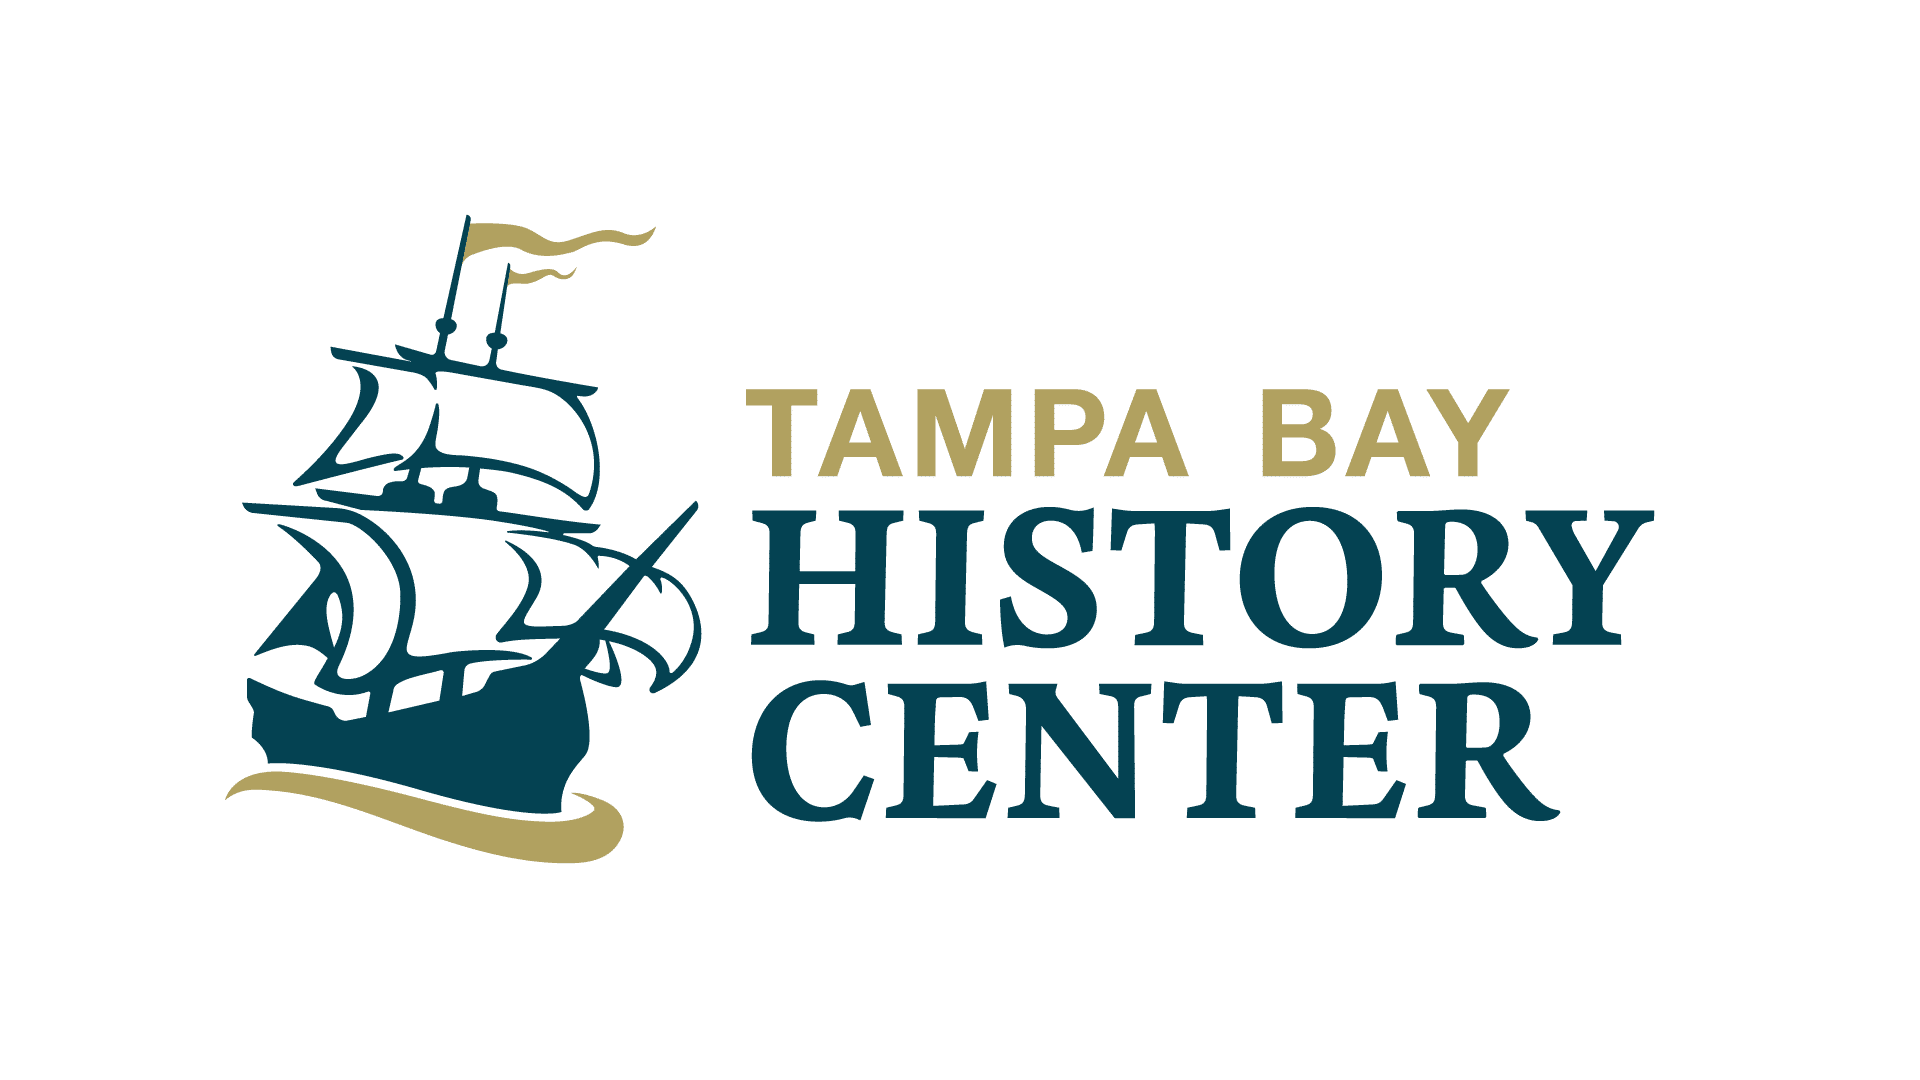 Tampa Bay History Center Redesigned logo